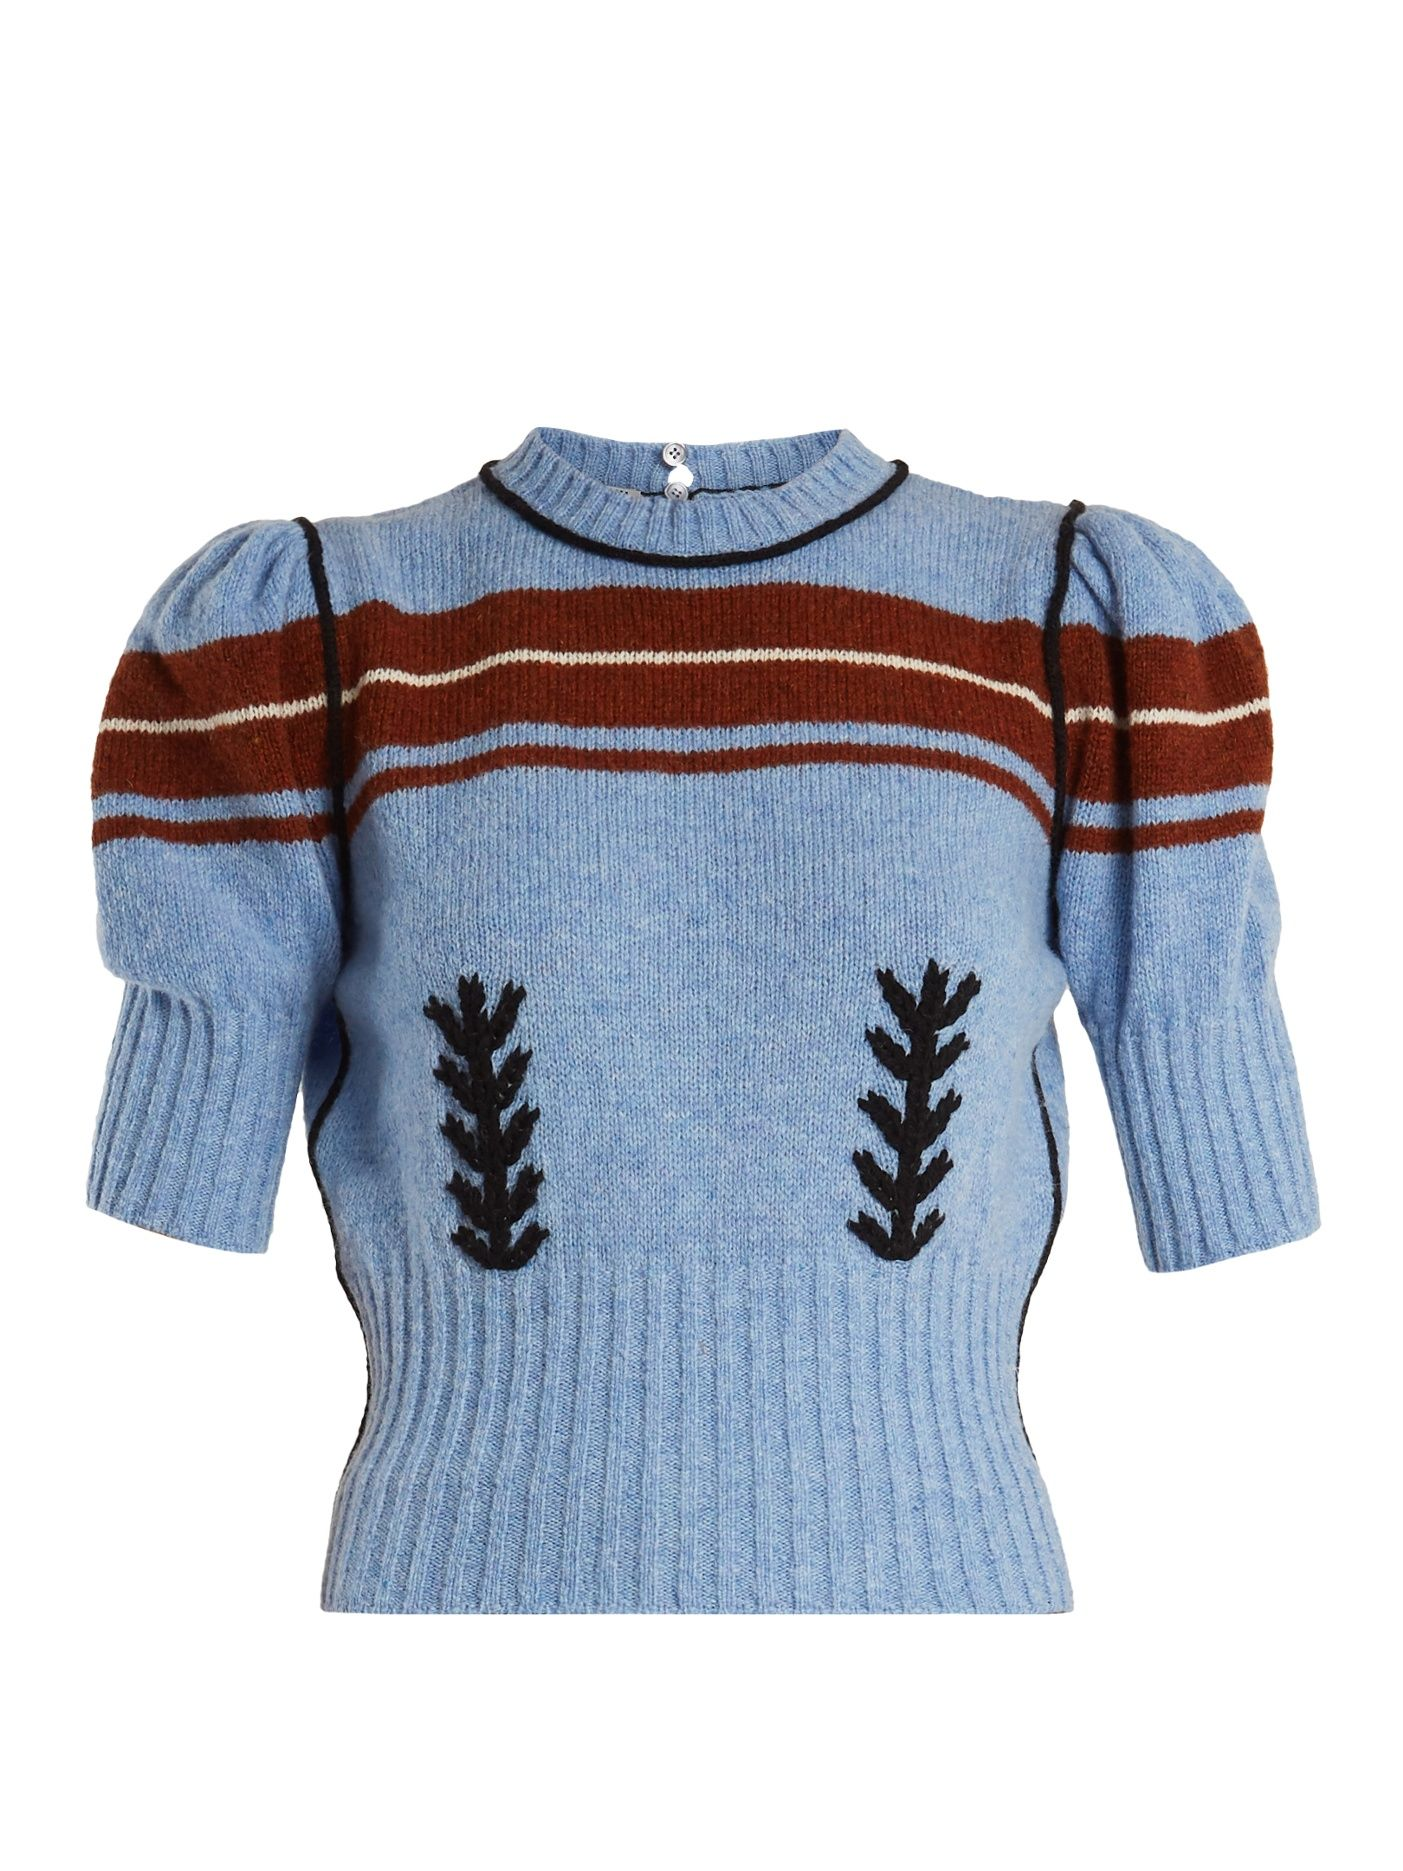 70755e10e2ab4 Click here to buy Miu Miu Embroidered and striped-intarsia wool knit  sweater at MATCHESFASHION.COM